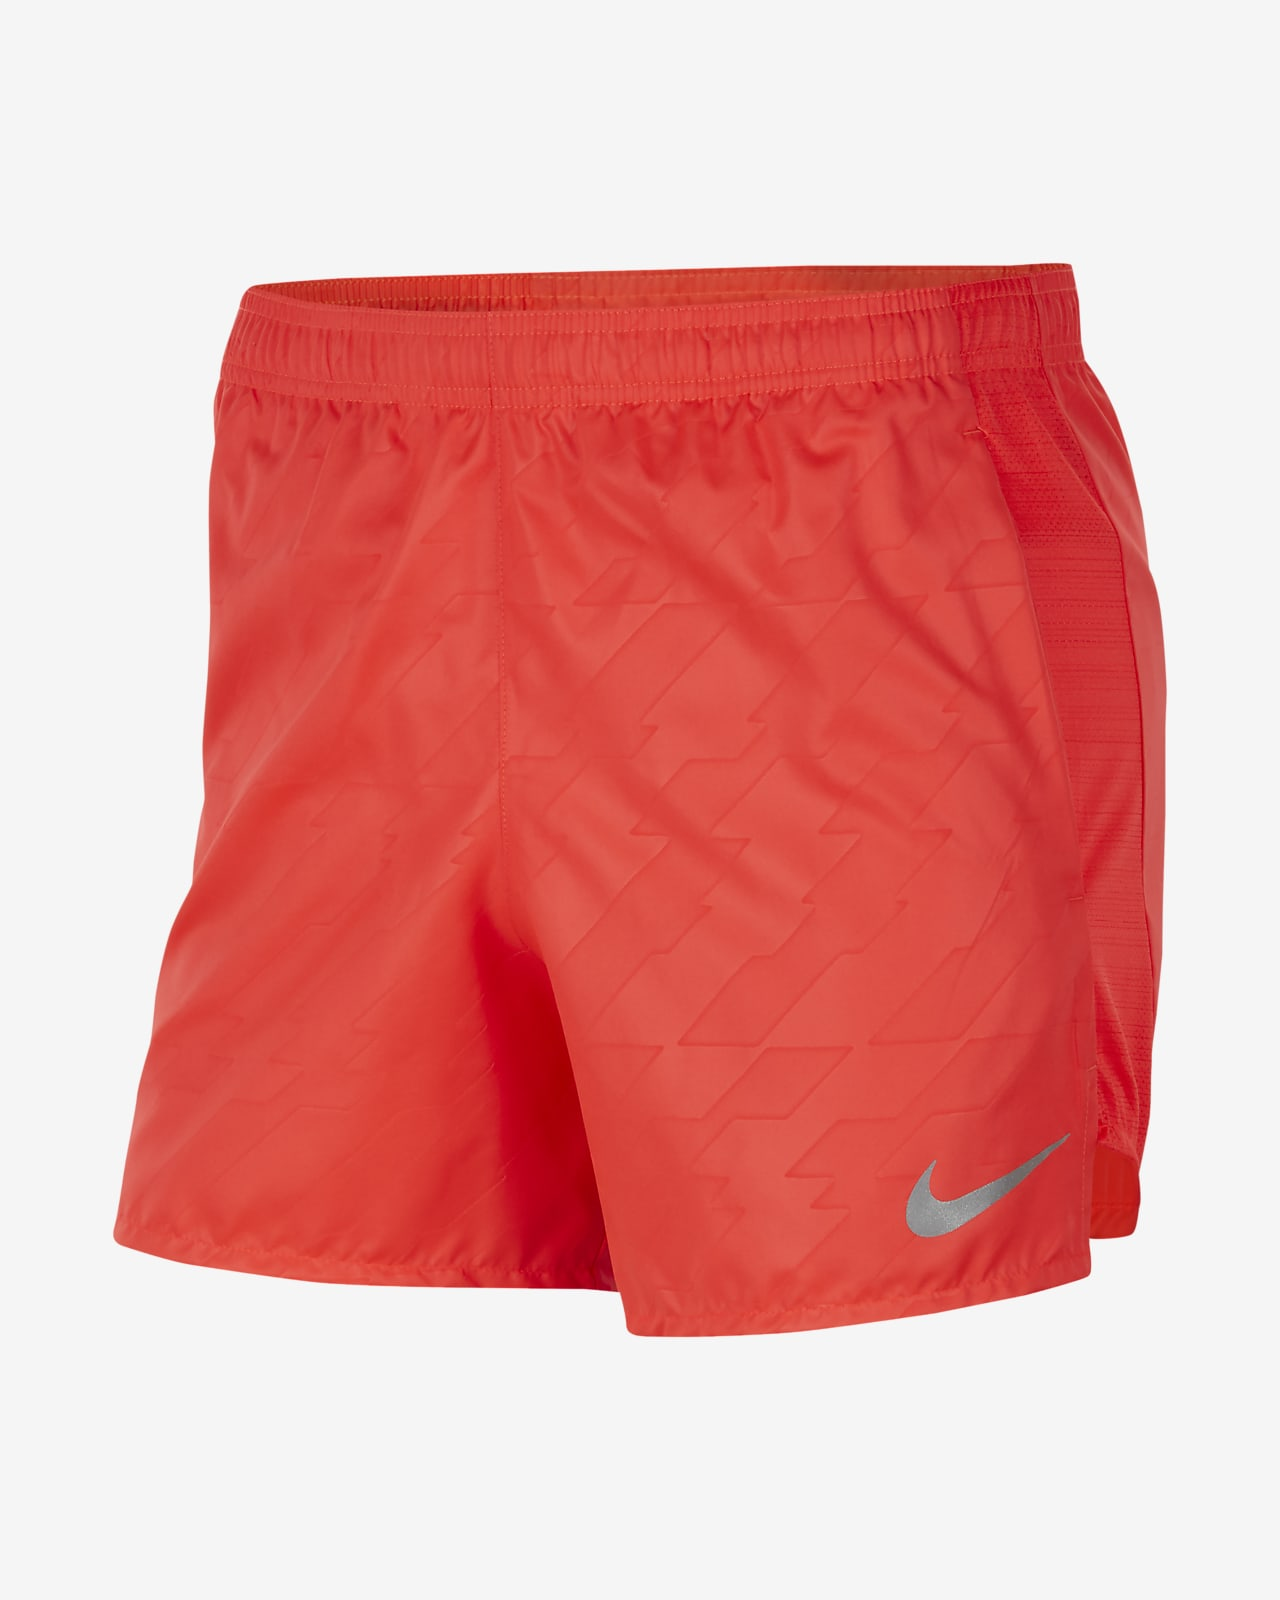 Nike Challenger Future Fast Men's Printed Running Shorts